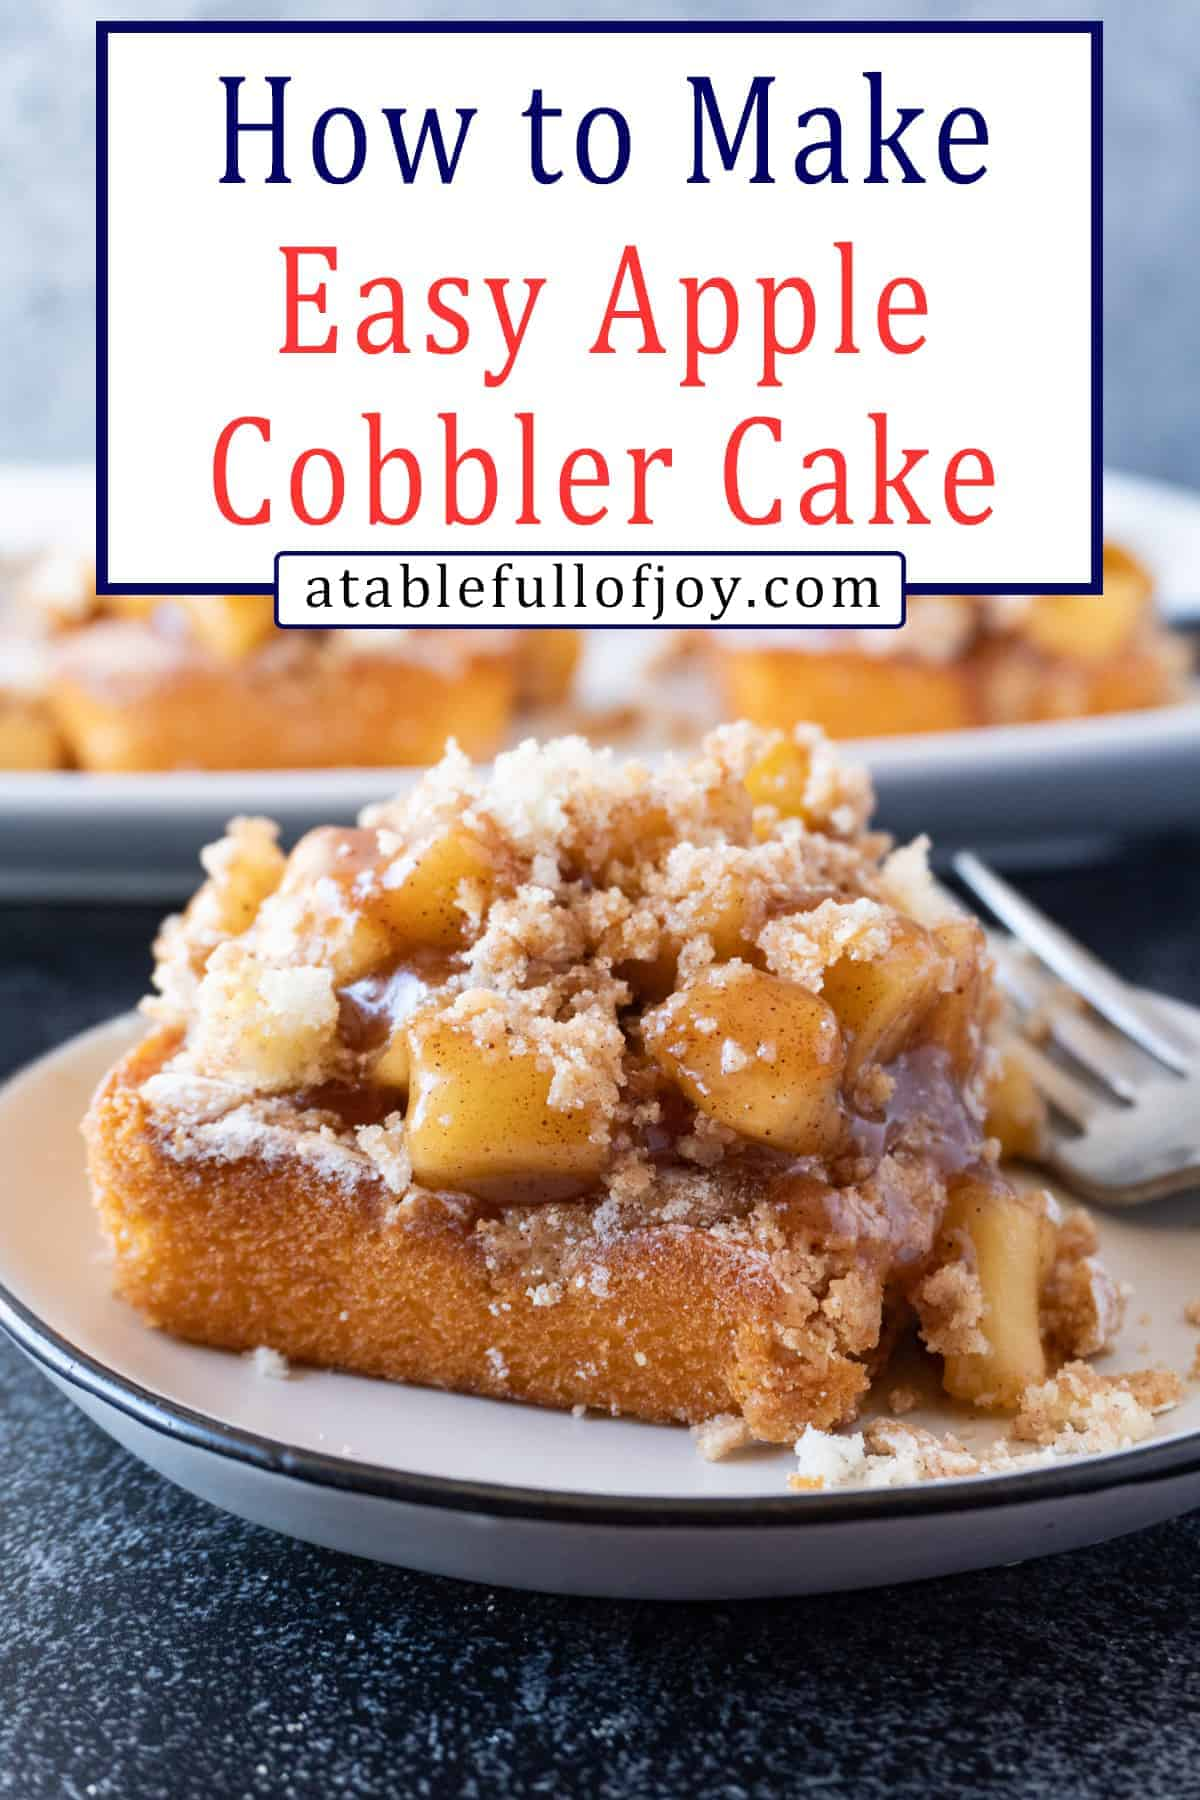 Apple Cobbler Cake Pinterest Pin